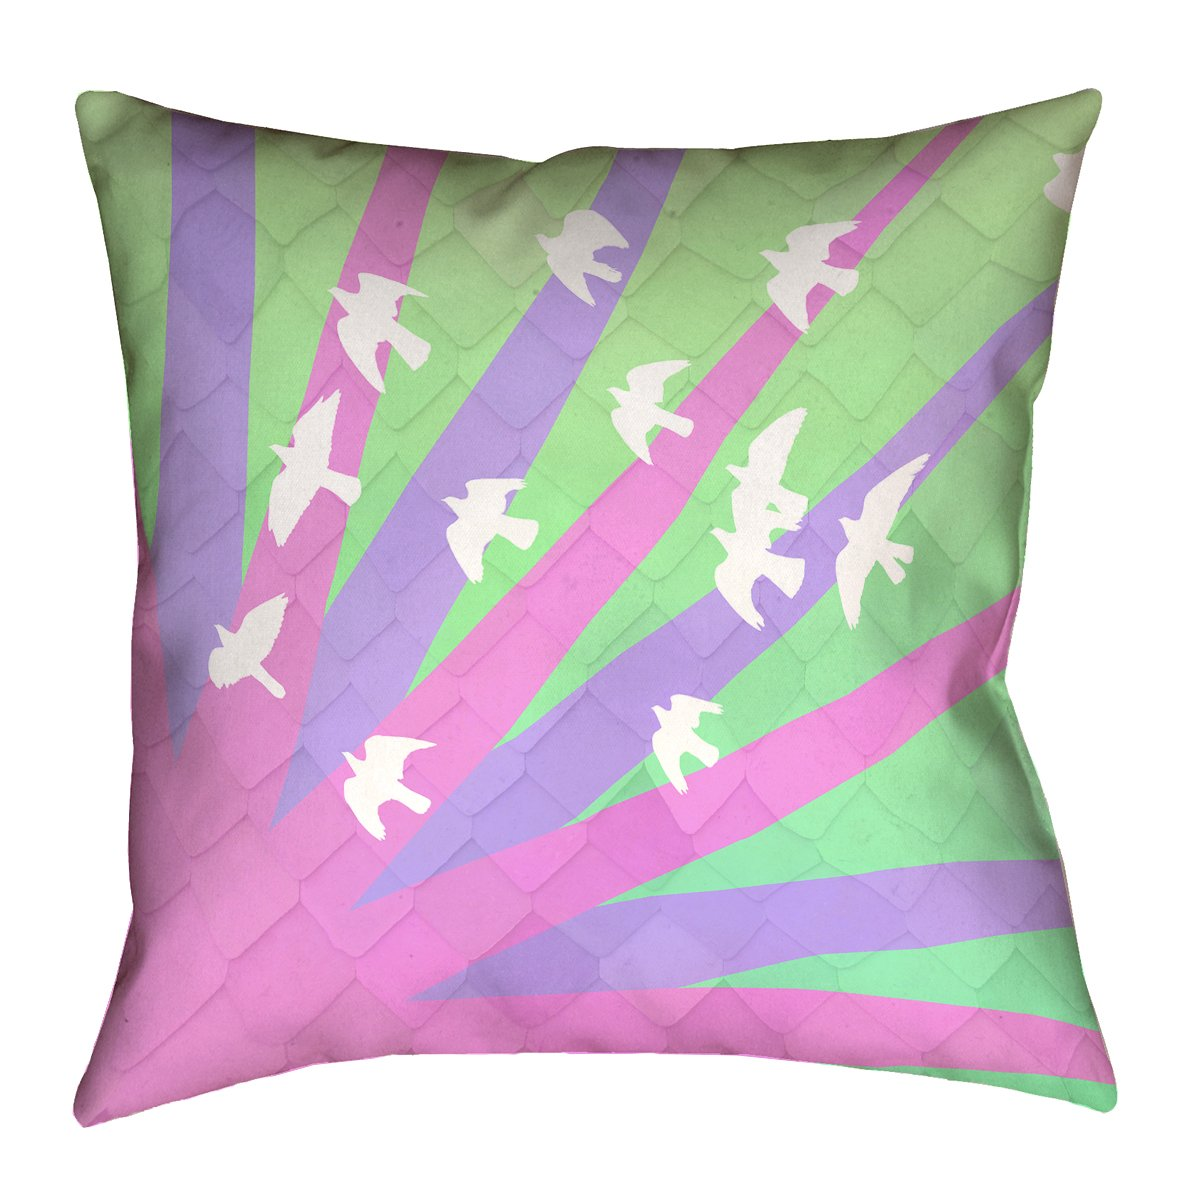 Updated Fabric ArtVerse Katelyn Smith Illinois 20 x 20 Pillow-Faux Linen Double Sided Print with Concealed Zipper /& Insert